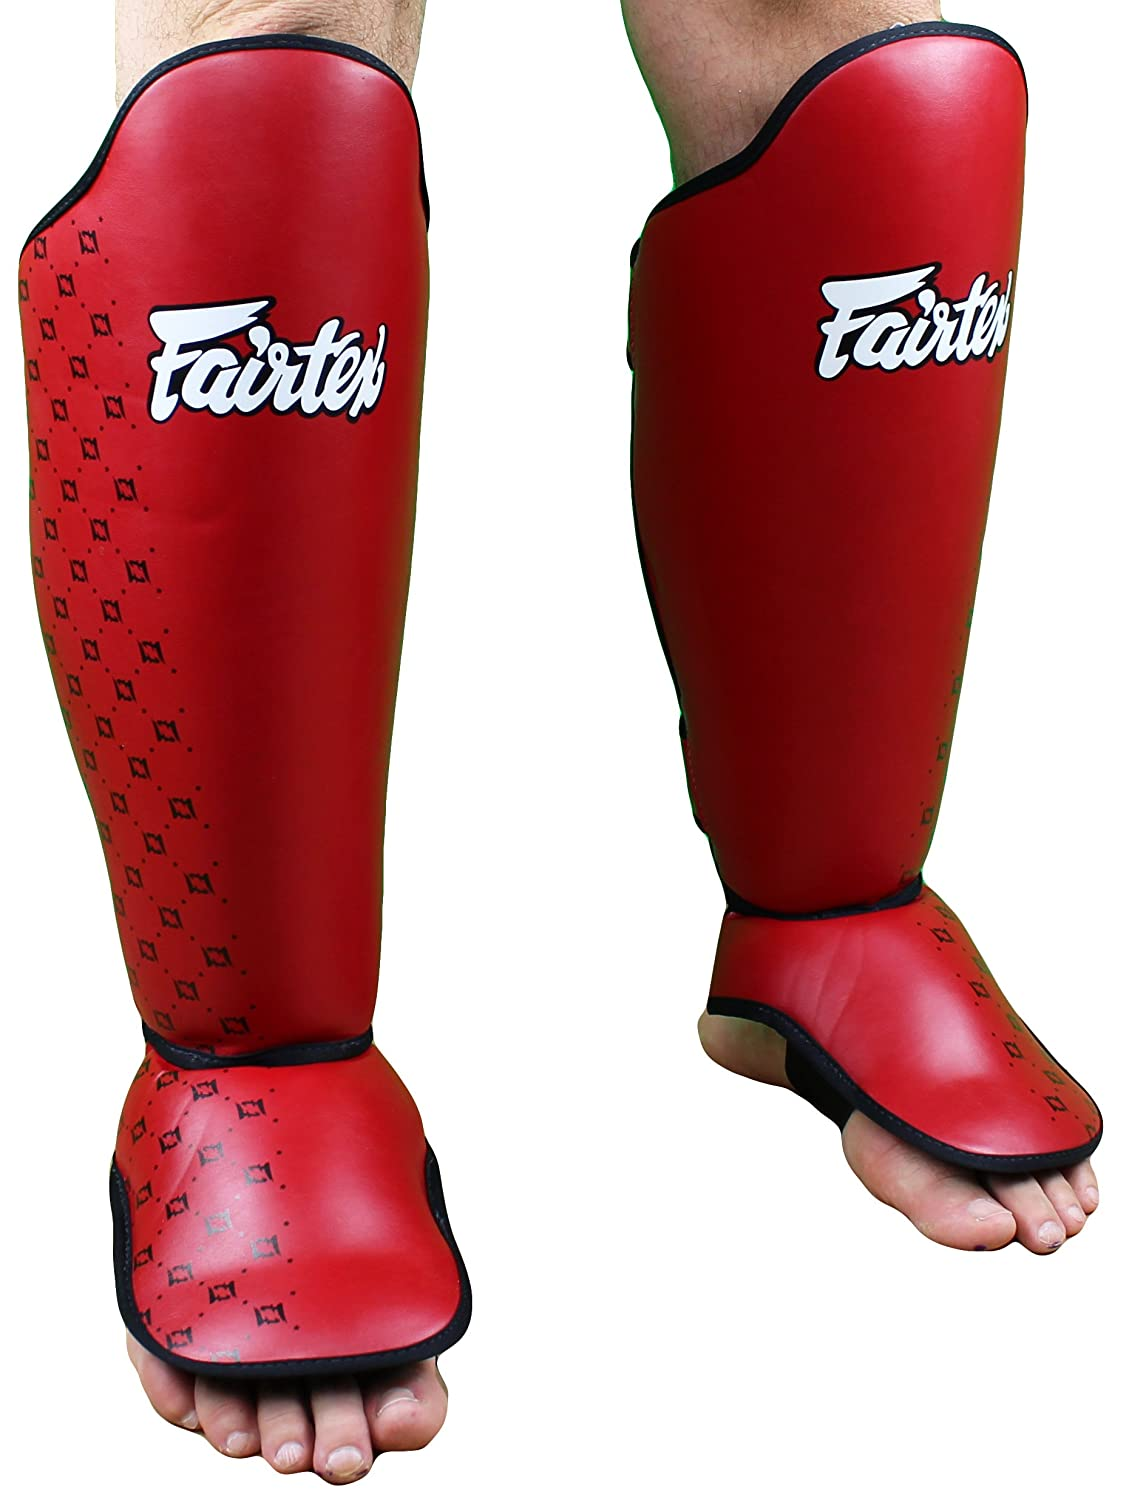 Fairtex Competition Shin Guards - Red